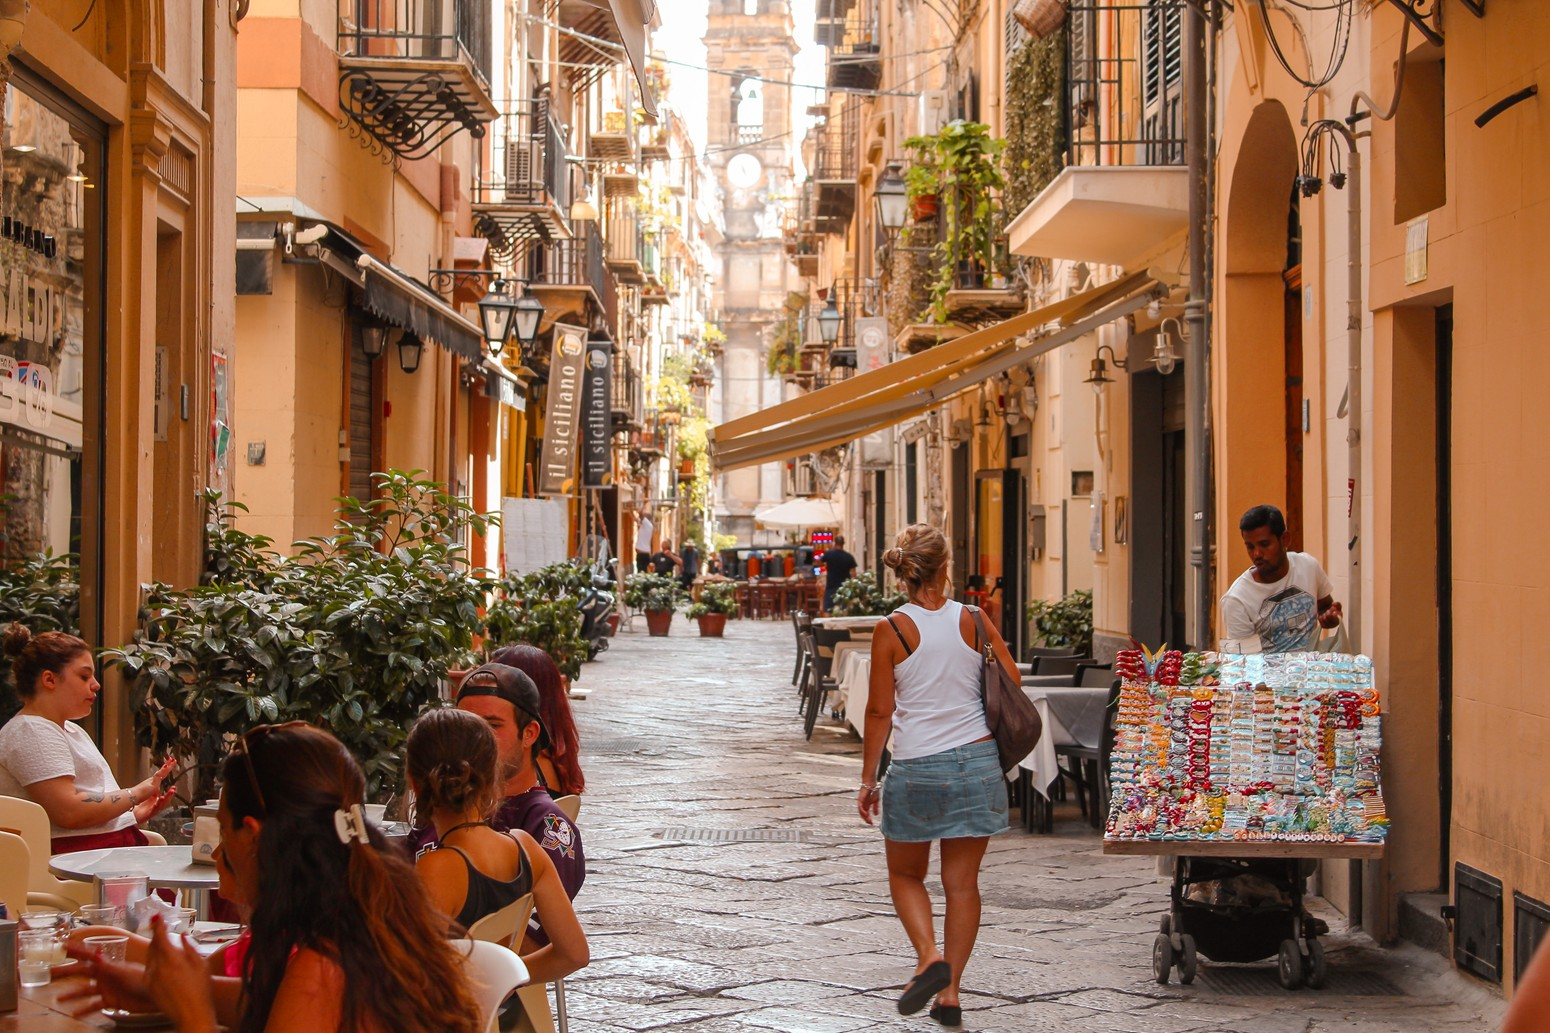 Explore Sicily with Expert Tips from Sunset Travel and Cruise Chicago, IL 60614